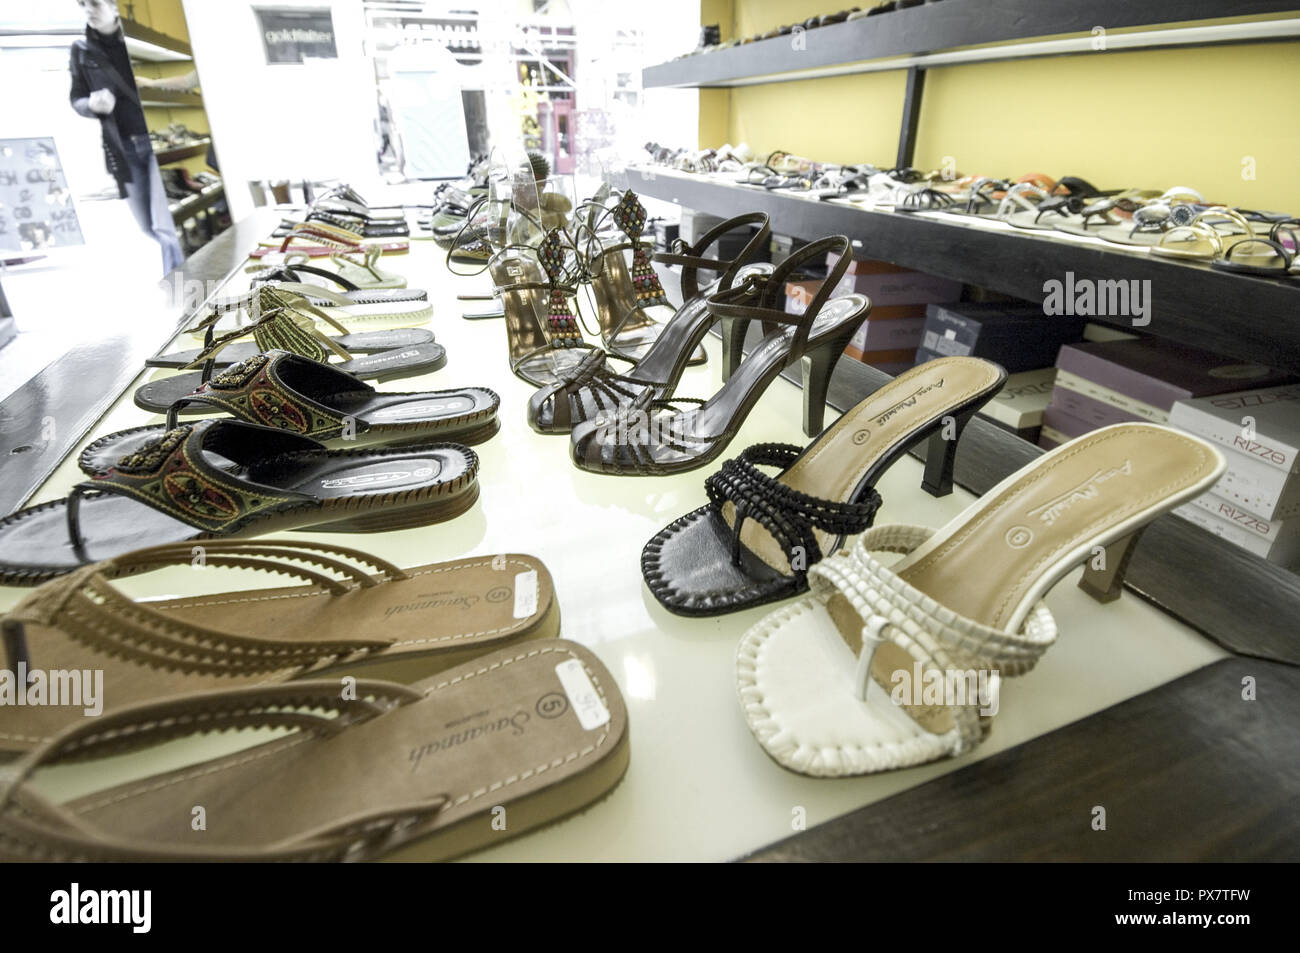 check out 16b2e 3e111 Shoe shop, Austria, Vienna Stock Photo: 222678397 - Alamy